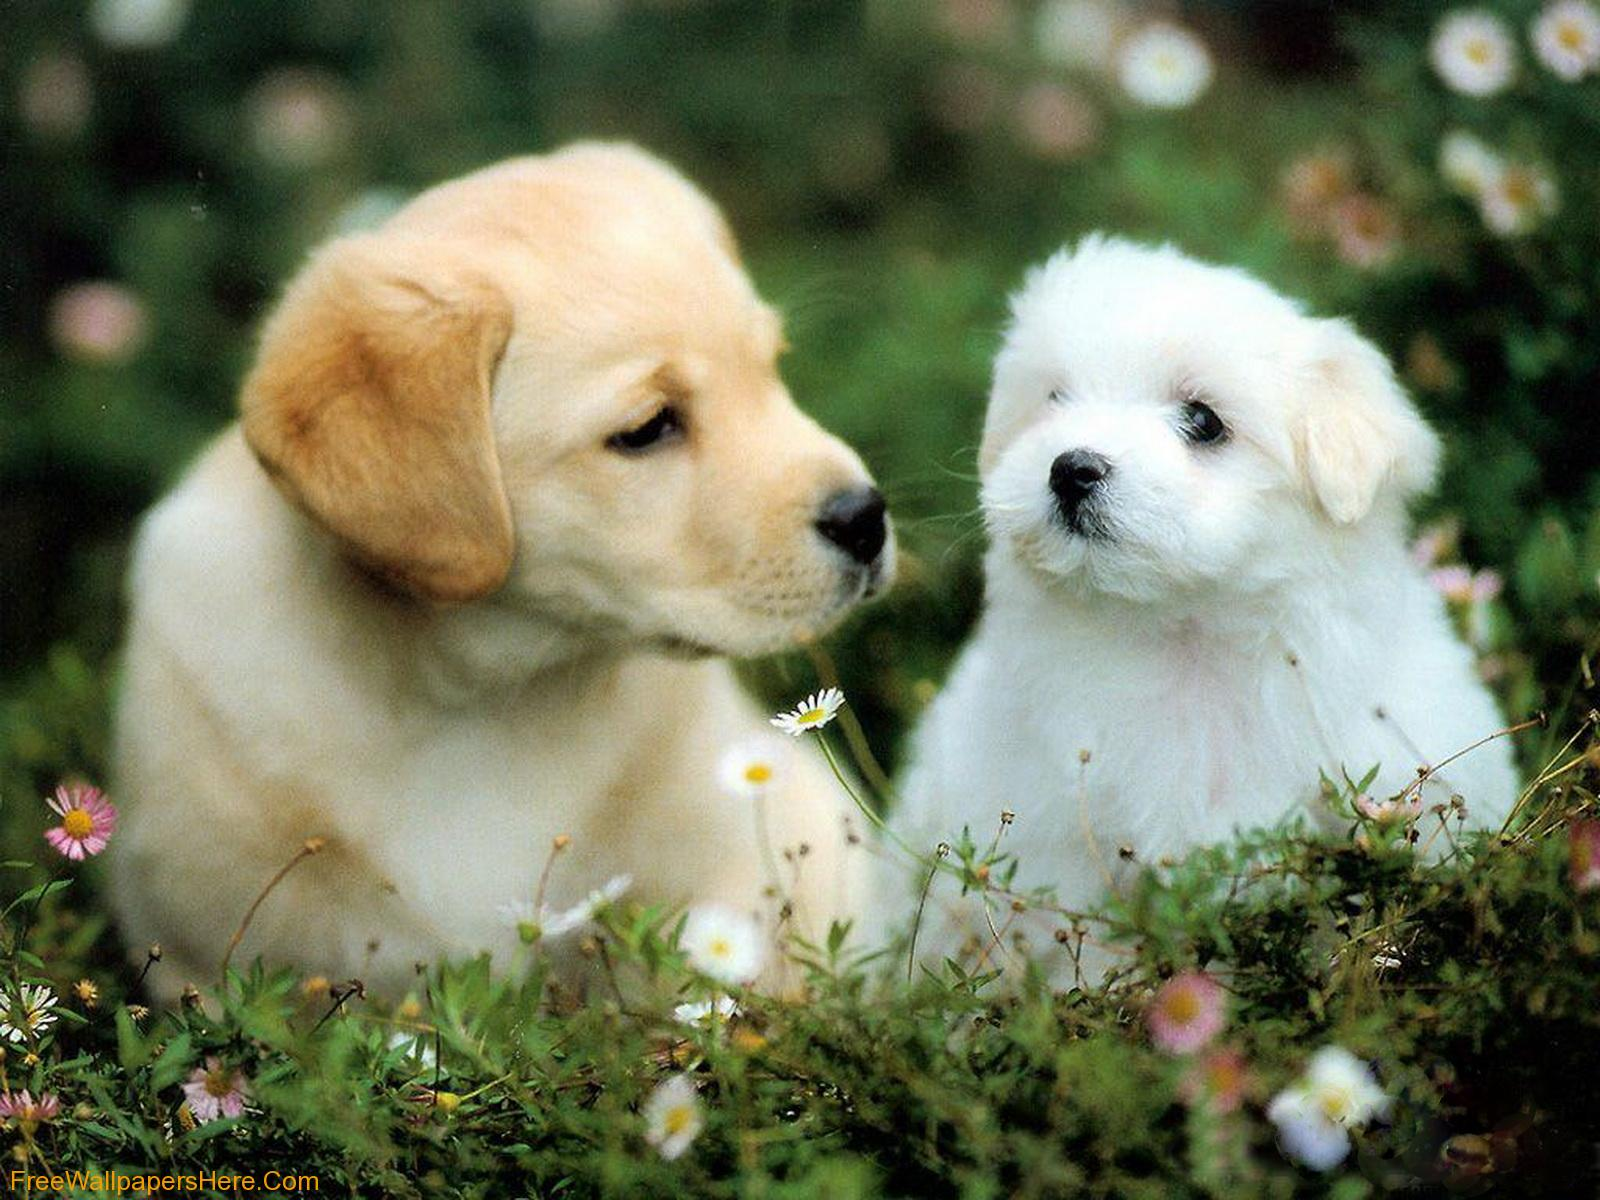 Wallpaper Gallery: Cute Pupies Wallpaper -4 Pictures Of Dogs